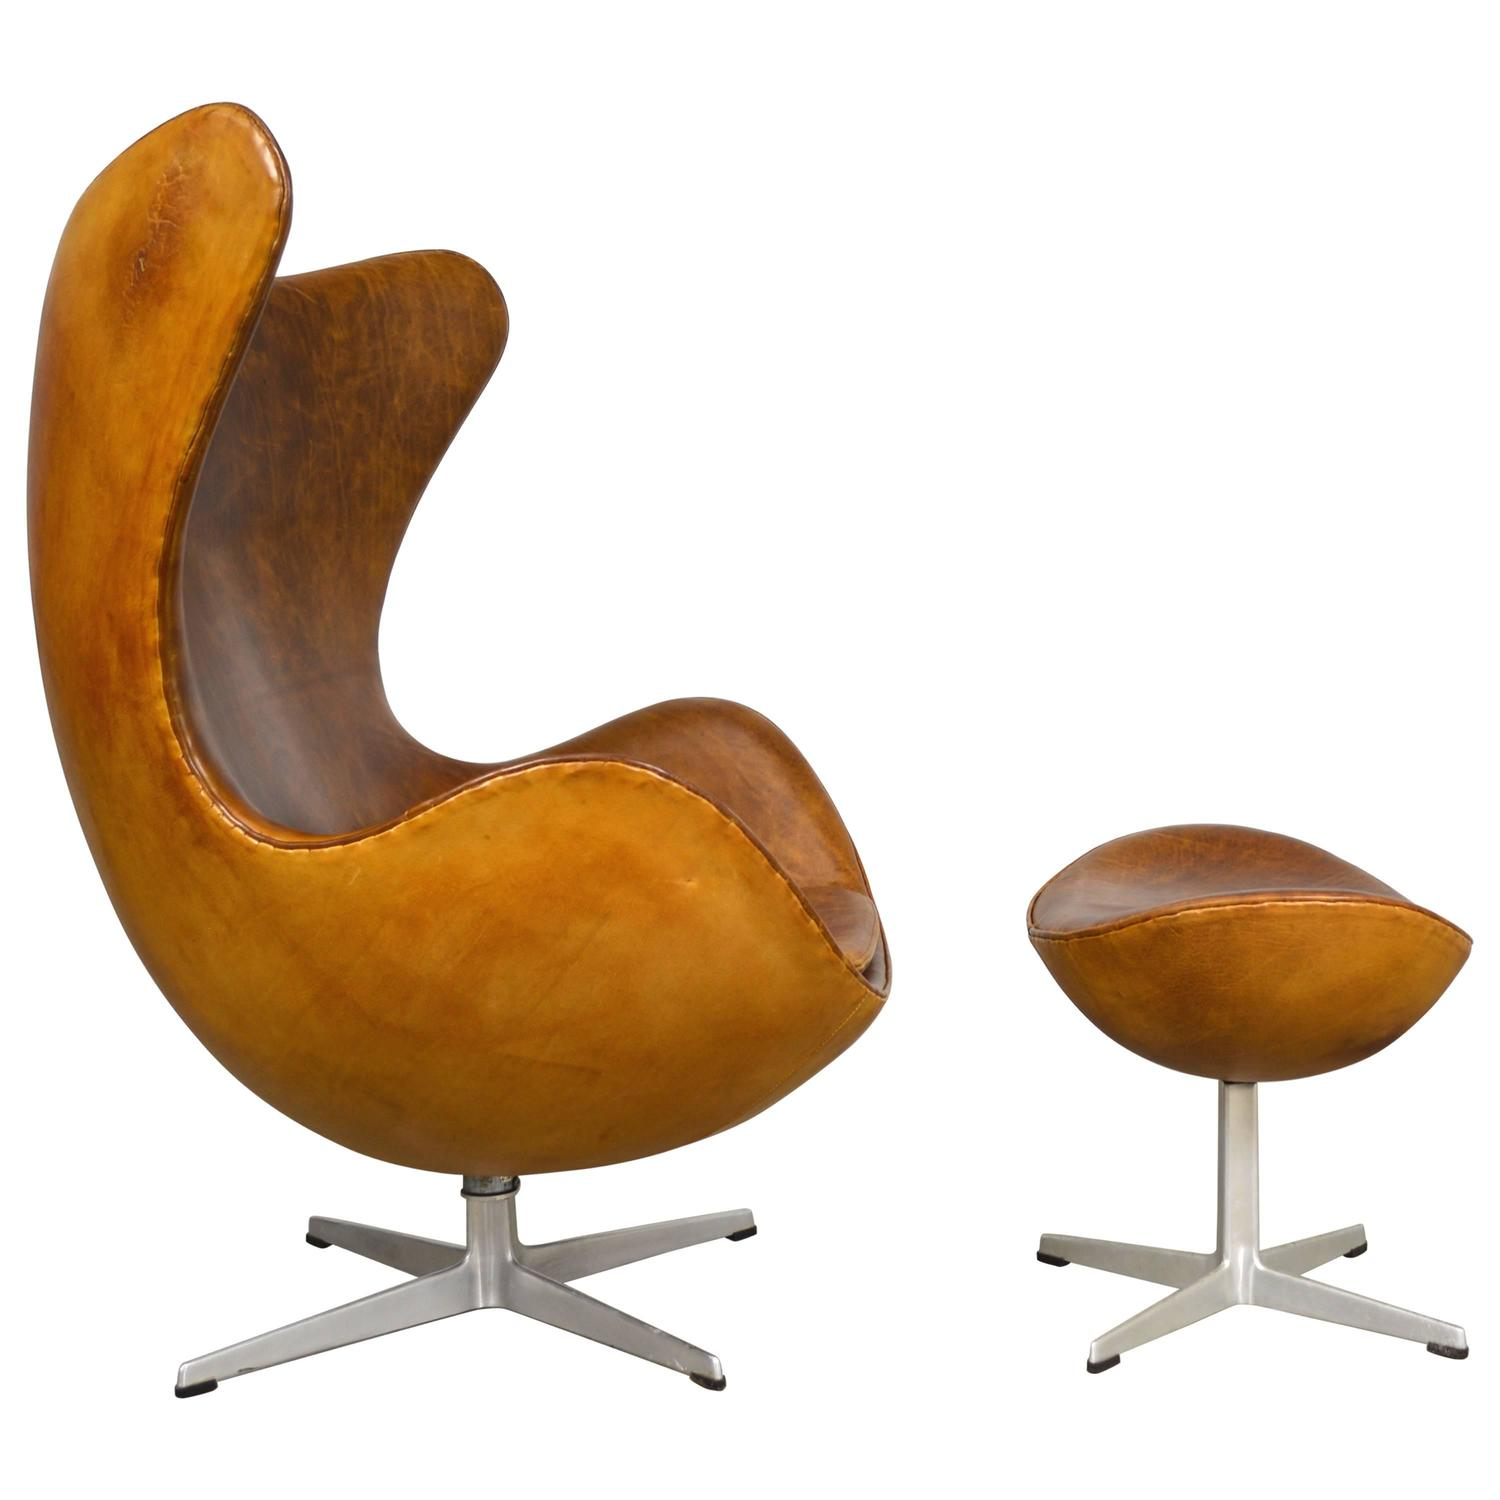 Affordable Egg Chair Arne Jacobsen Egg Chair And Ottoman At 1stdibs